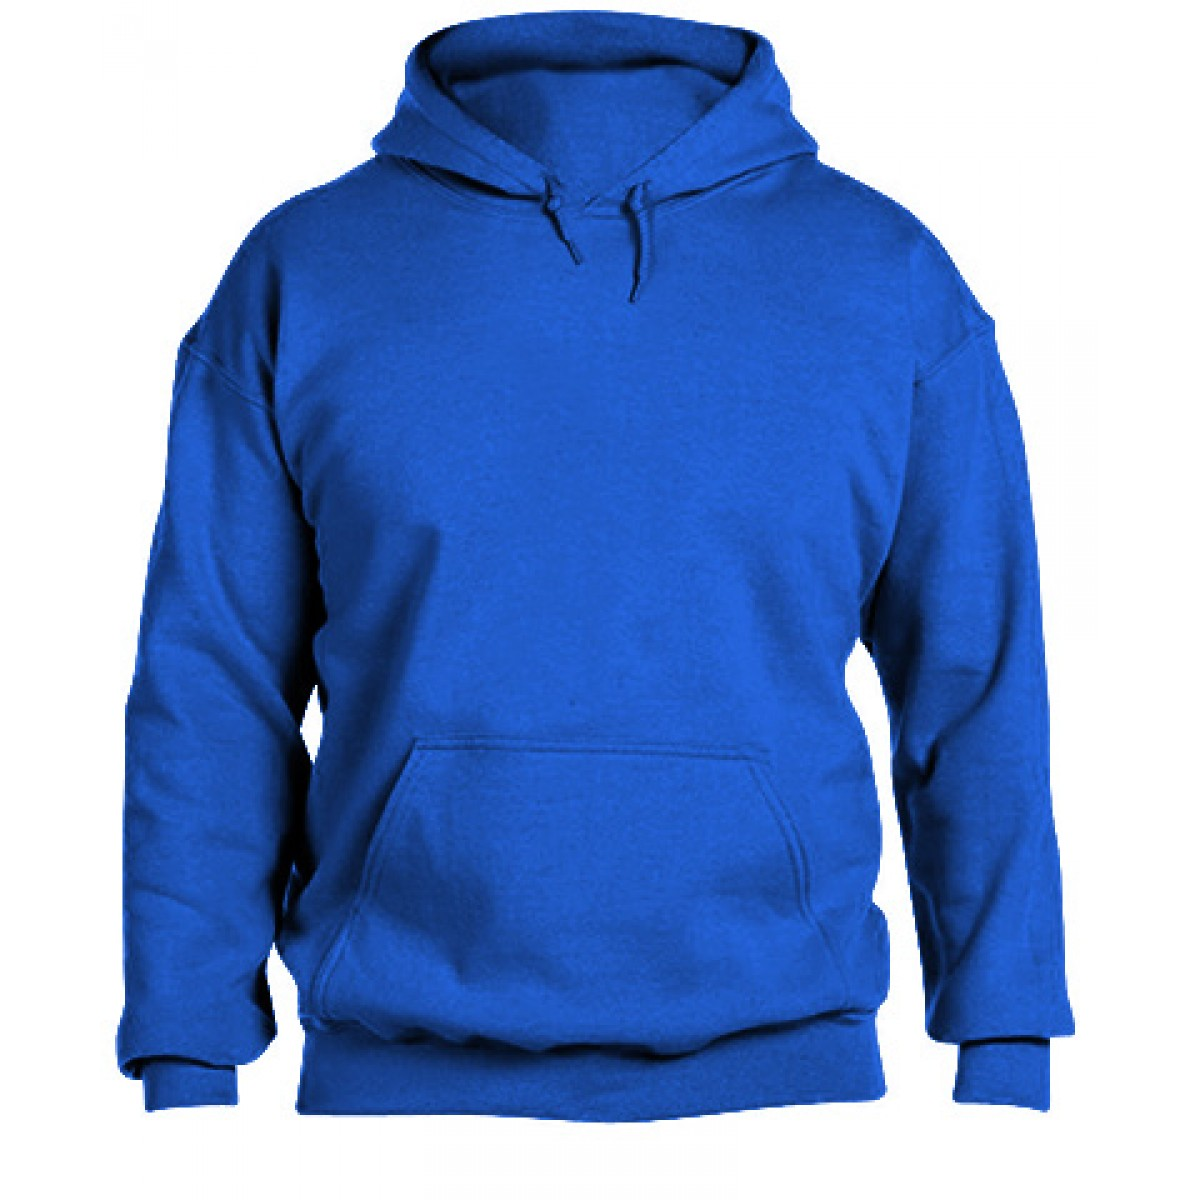 Hooded Sweatshirt  50/50 Heavy Blend-Royal Blue-M